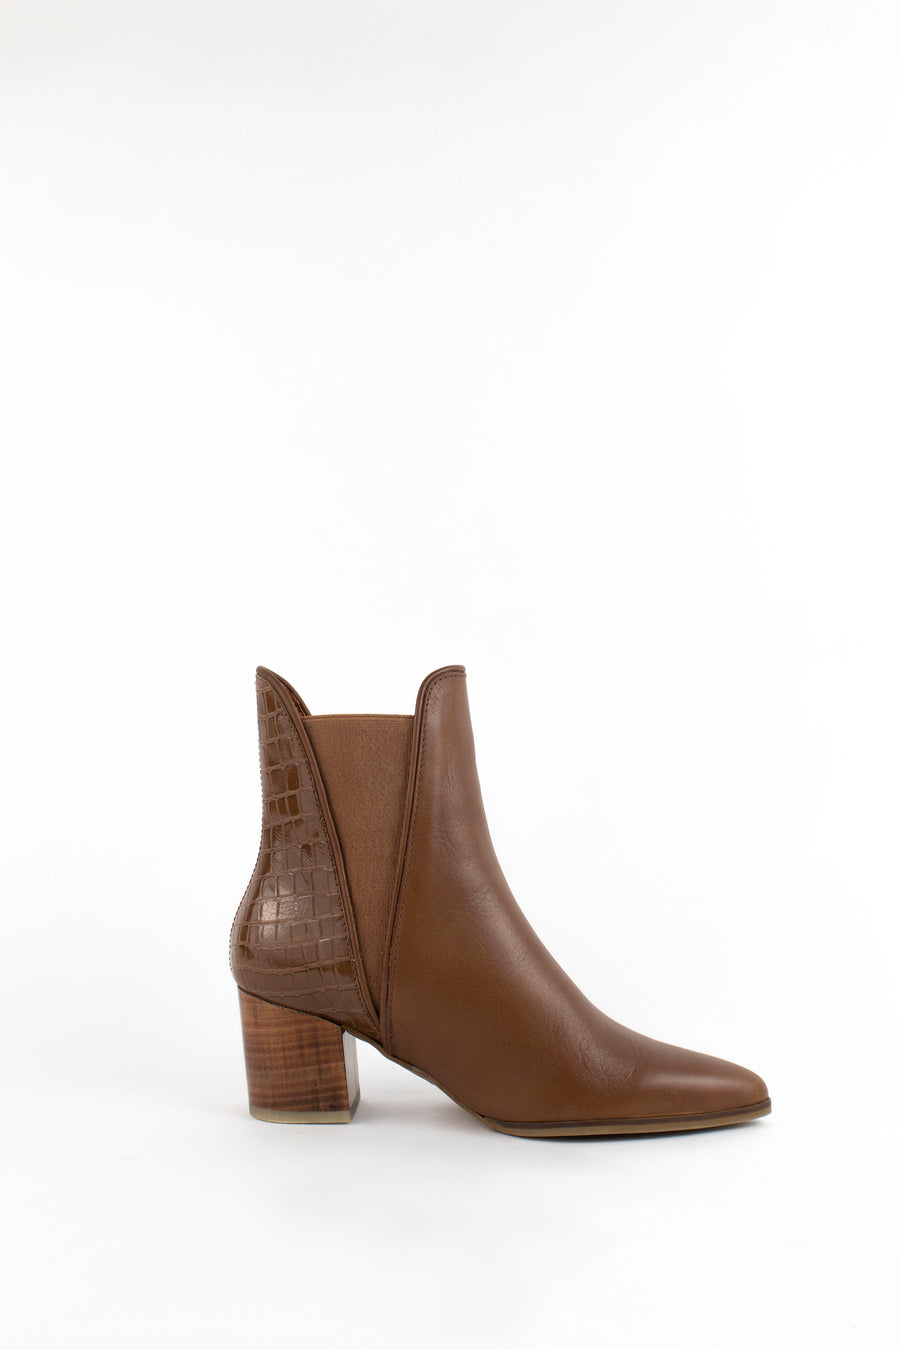 Beirut chelsea booties in tan leather by tan croc embossed leather